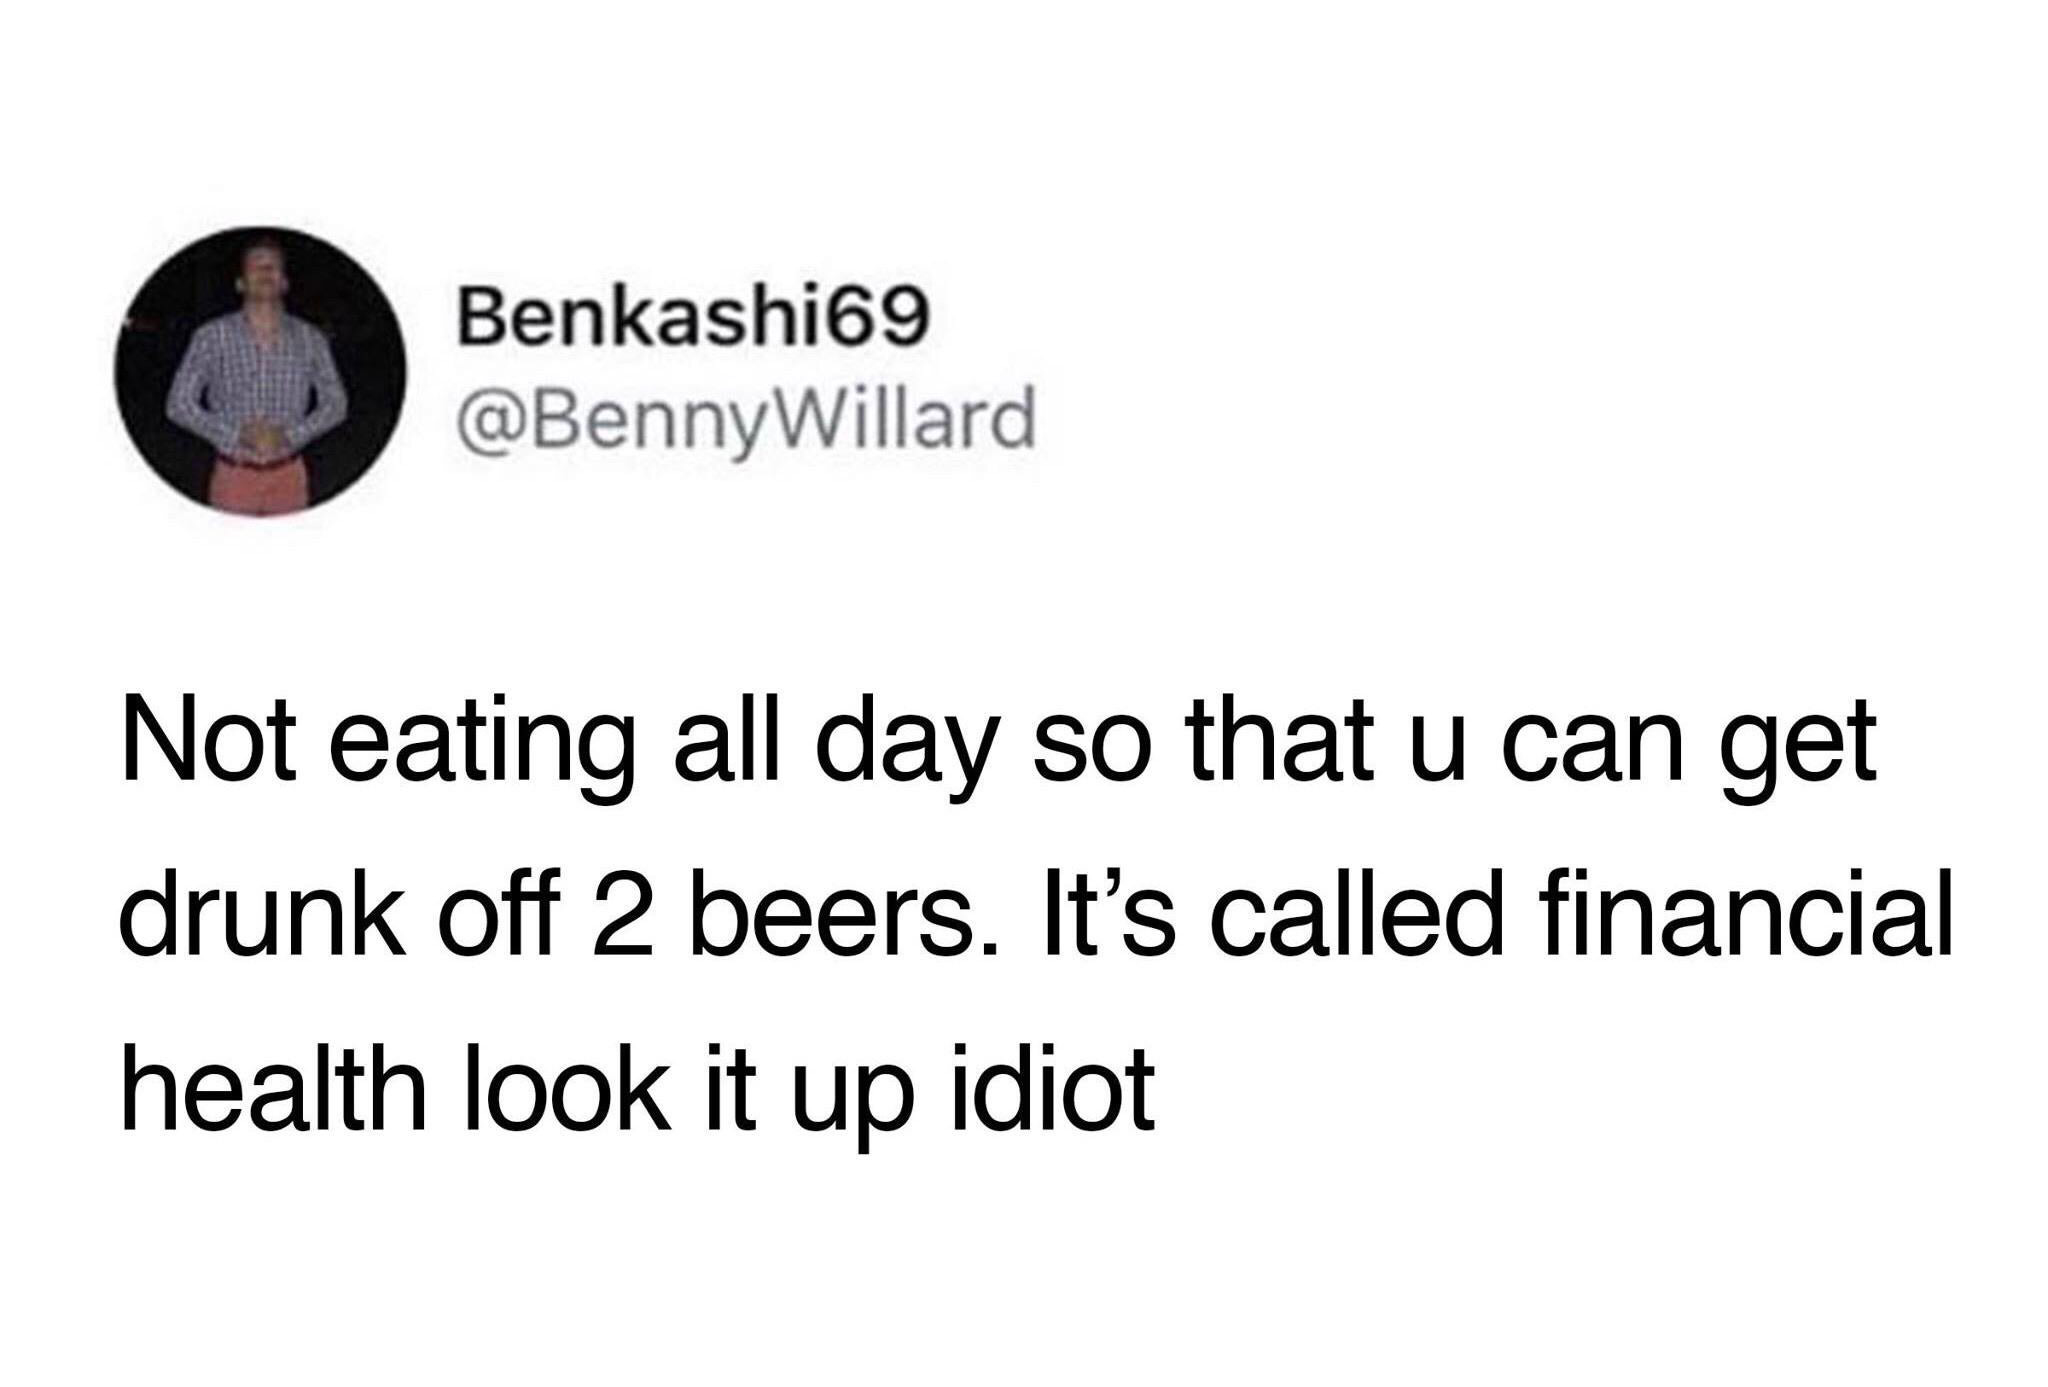 someone who doesn't eat so they can get drunk easier